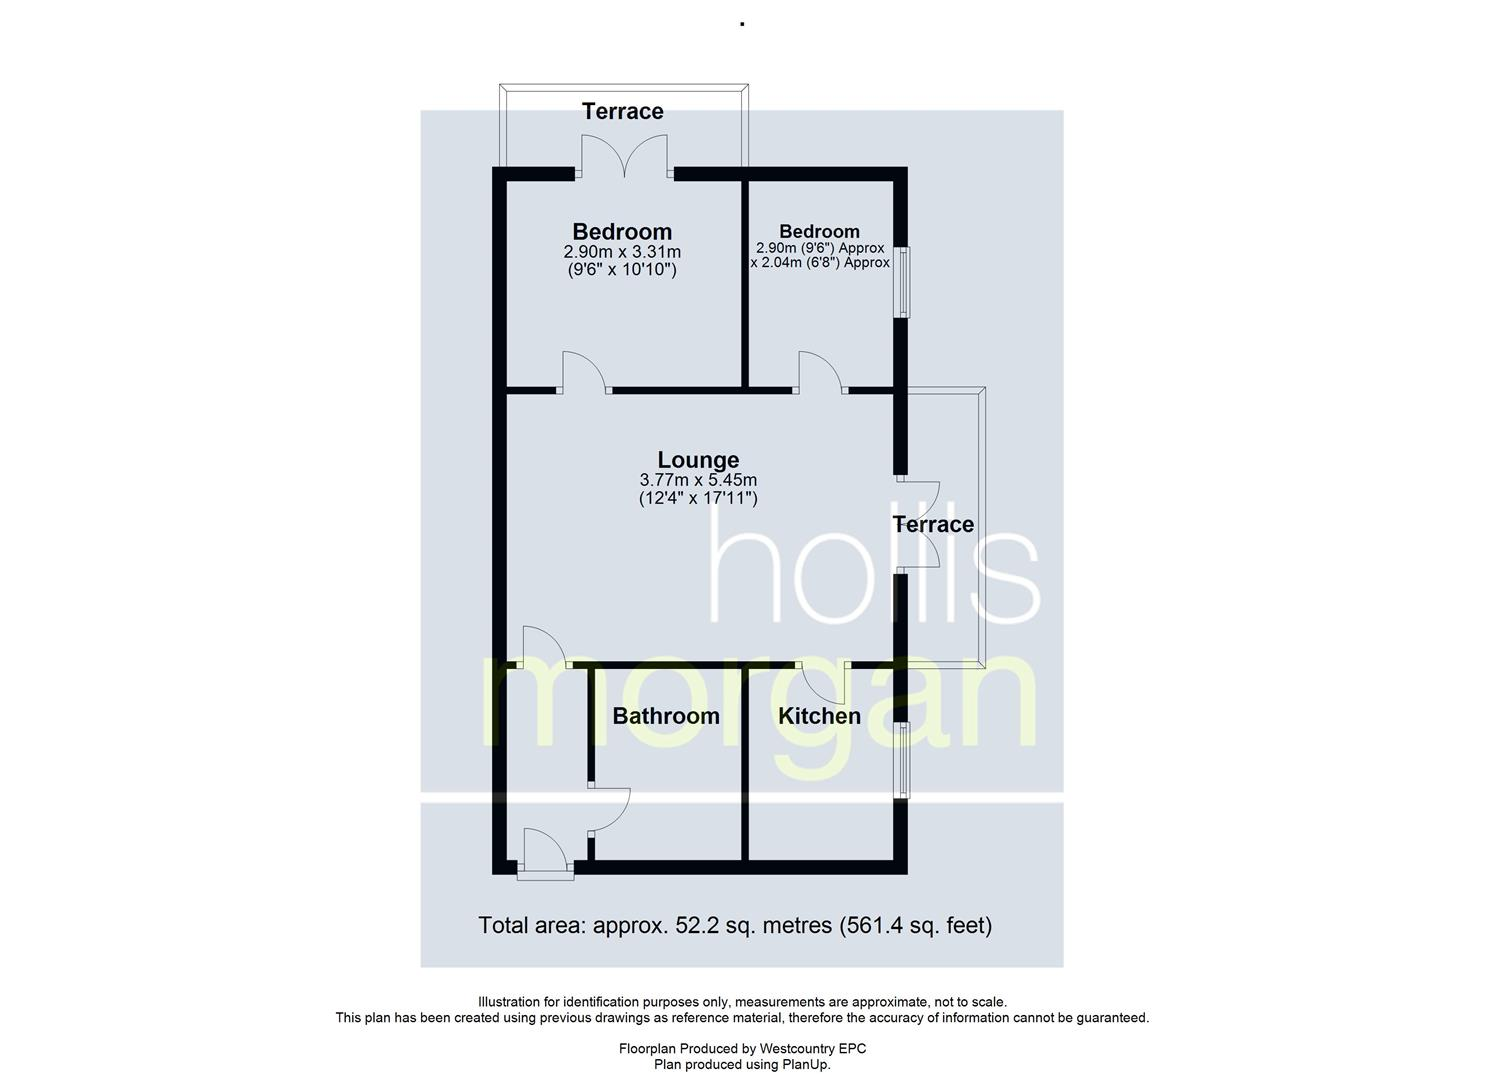 Floorplans For FLAT - REDUCED PRICE / INVESTMENT